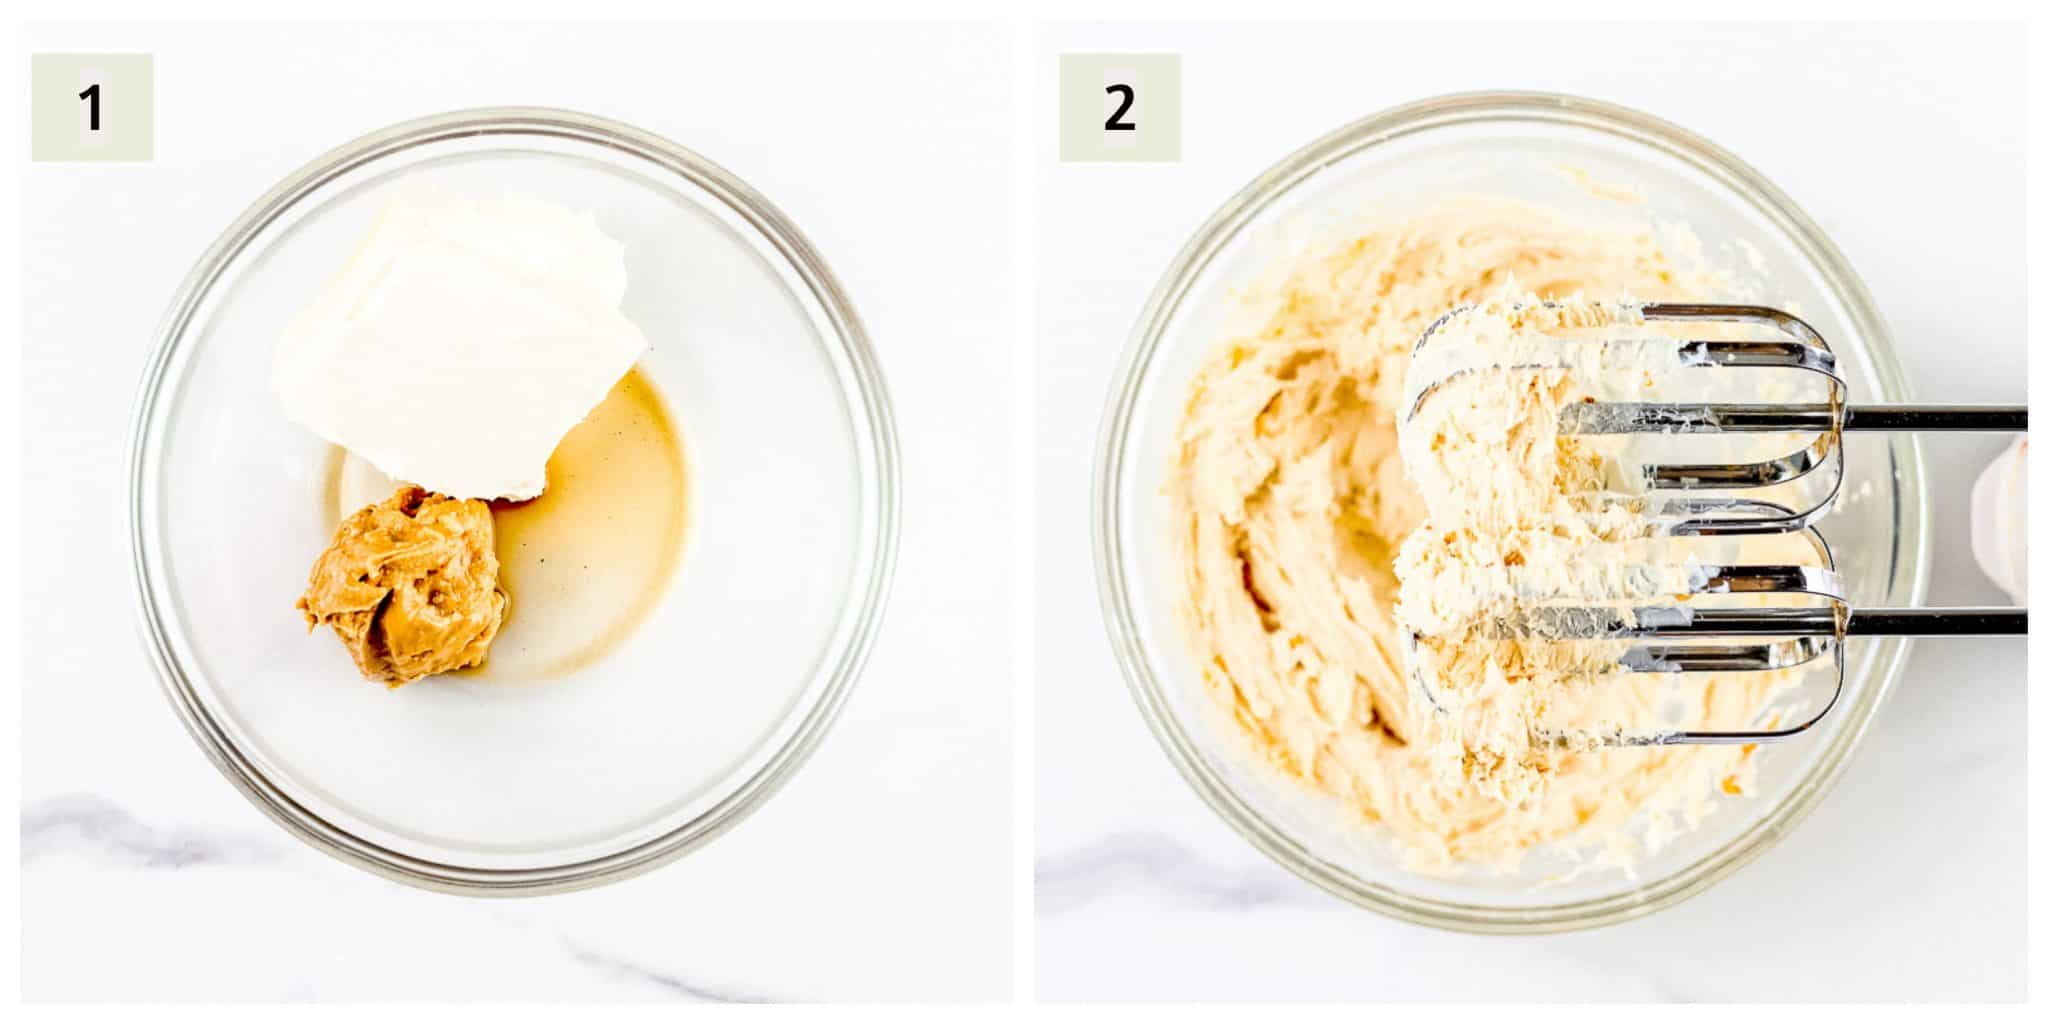 Process shots to make peanut butter cream cheese for mini bagels.